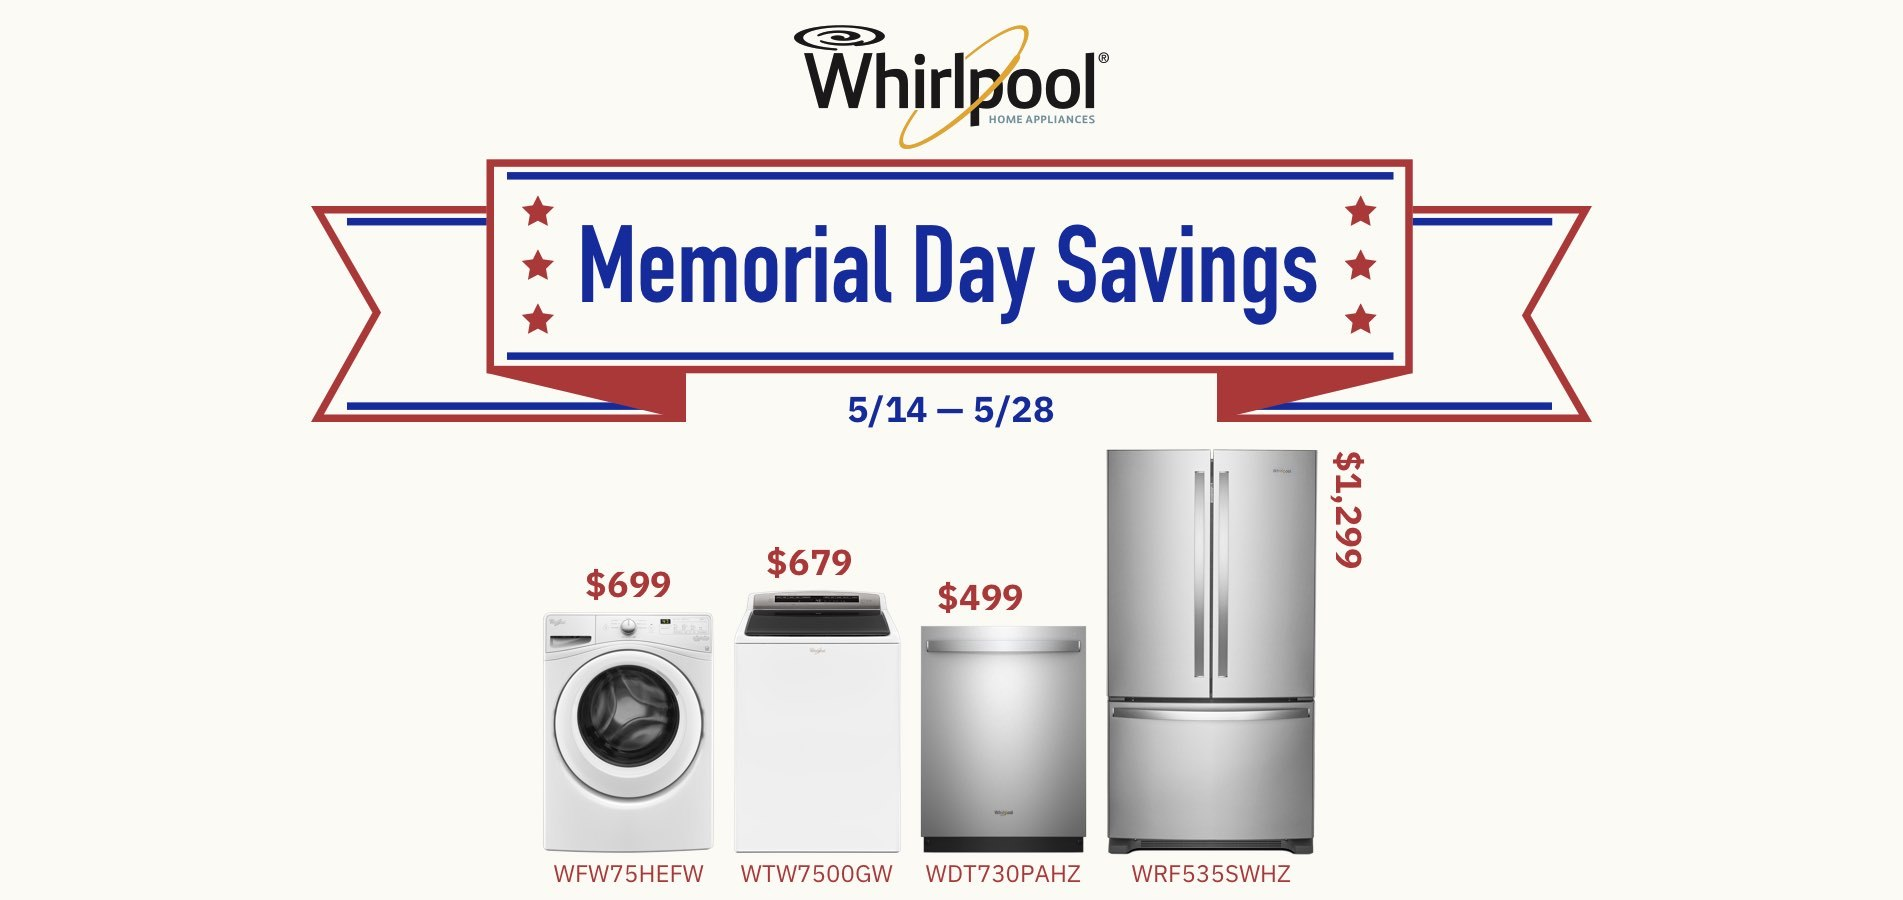 Whirlpool Memorial Day